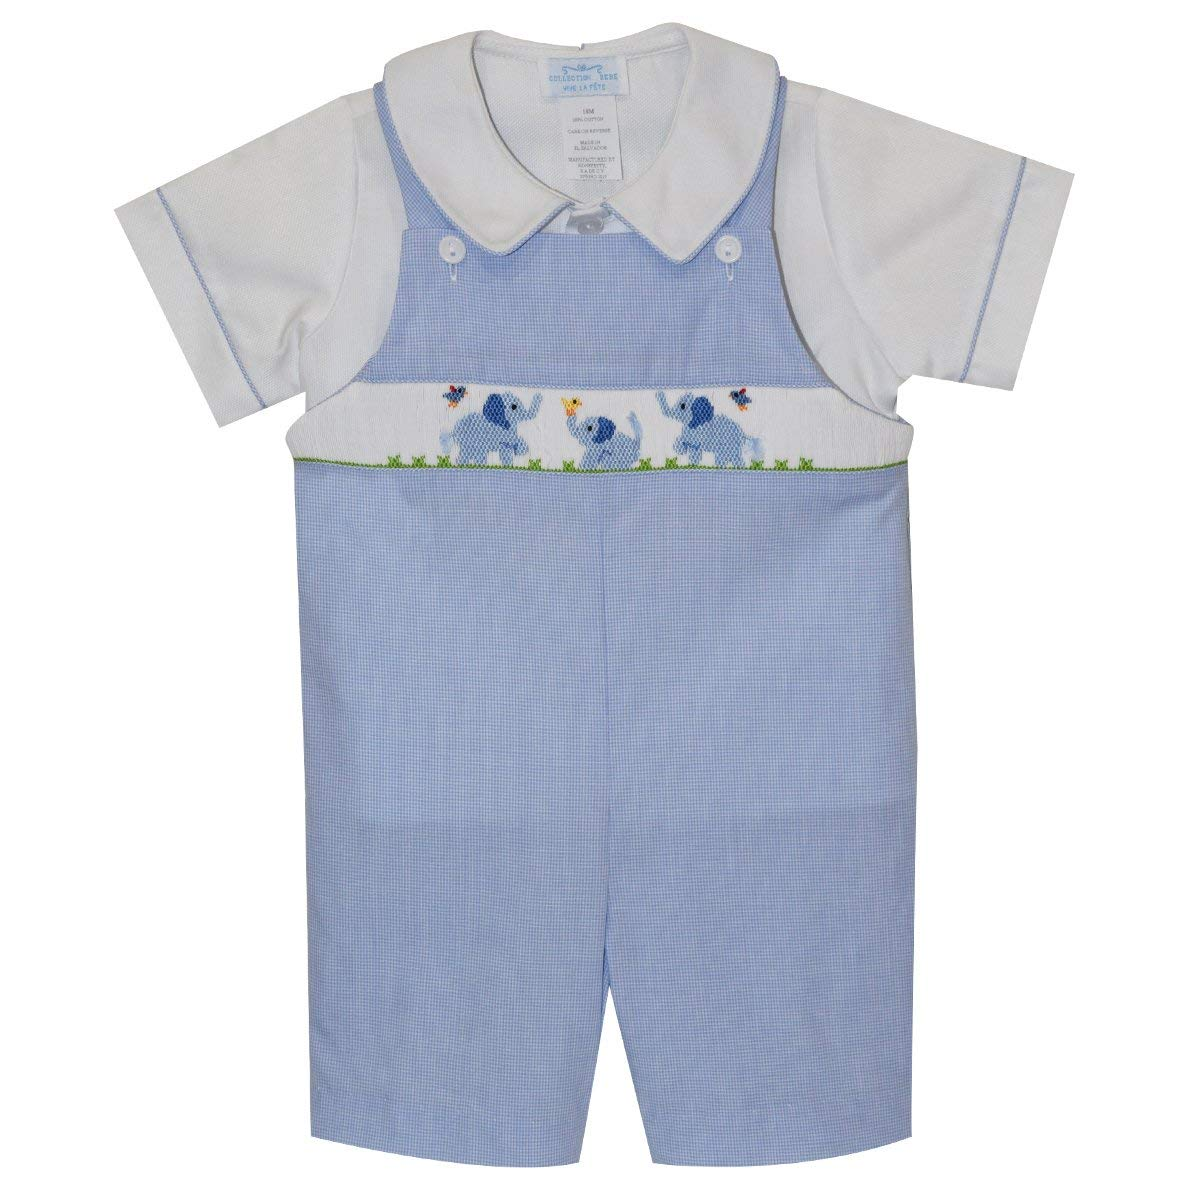 Collection Bebe Baby Elephants Smocked Boys Shortall Short Sleeve